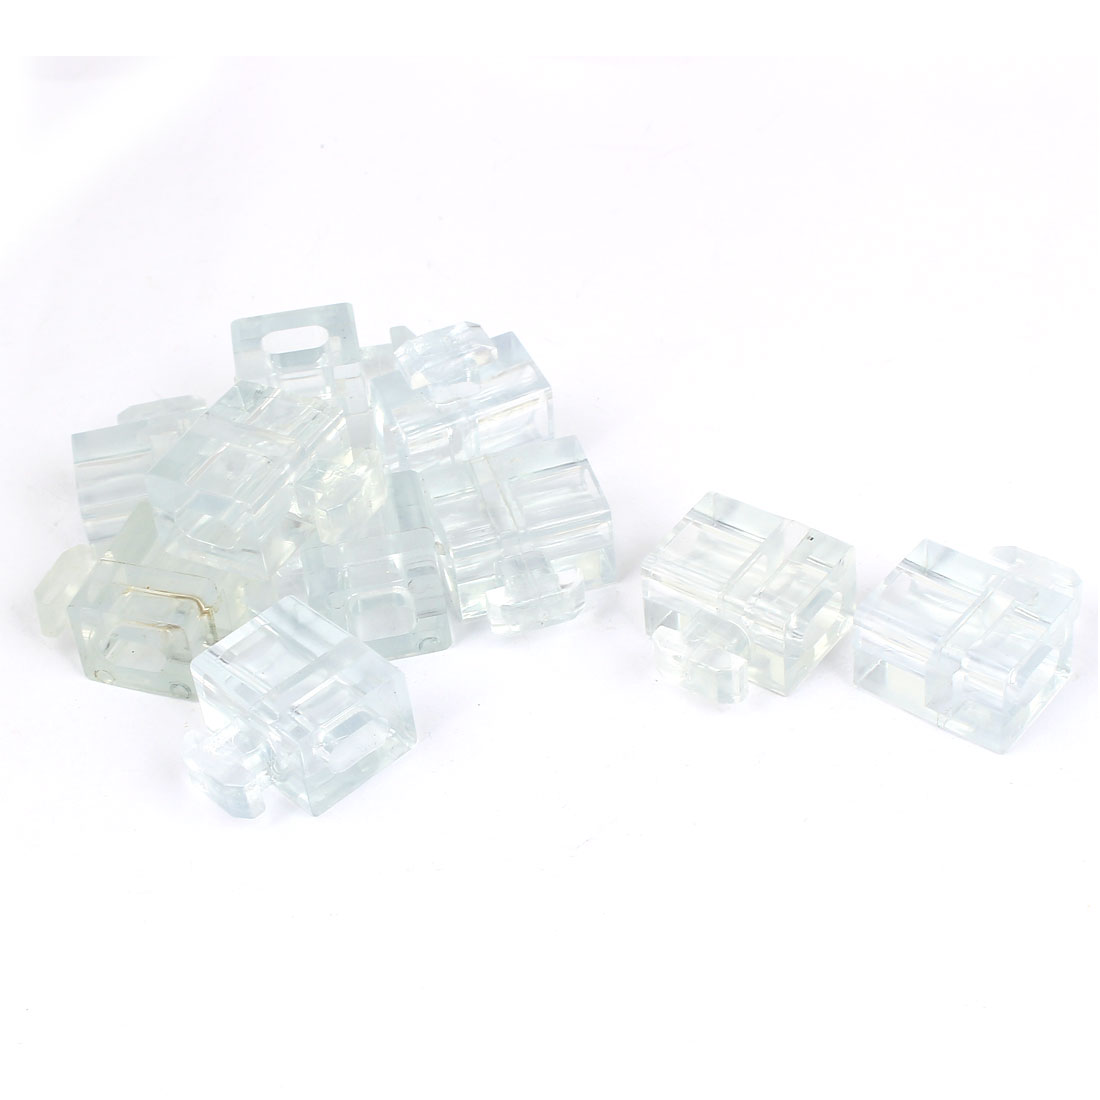 Industrial Aluminum Glass Spacer Fastener Block Connector Clear 45 Series 10pcs